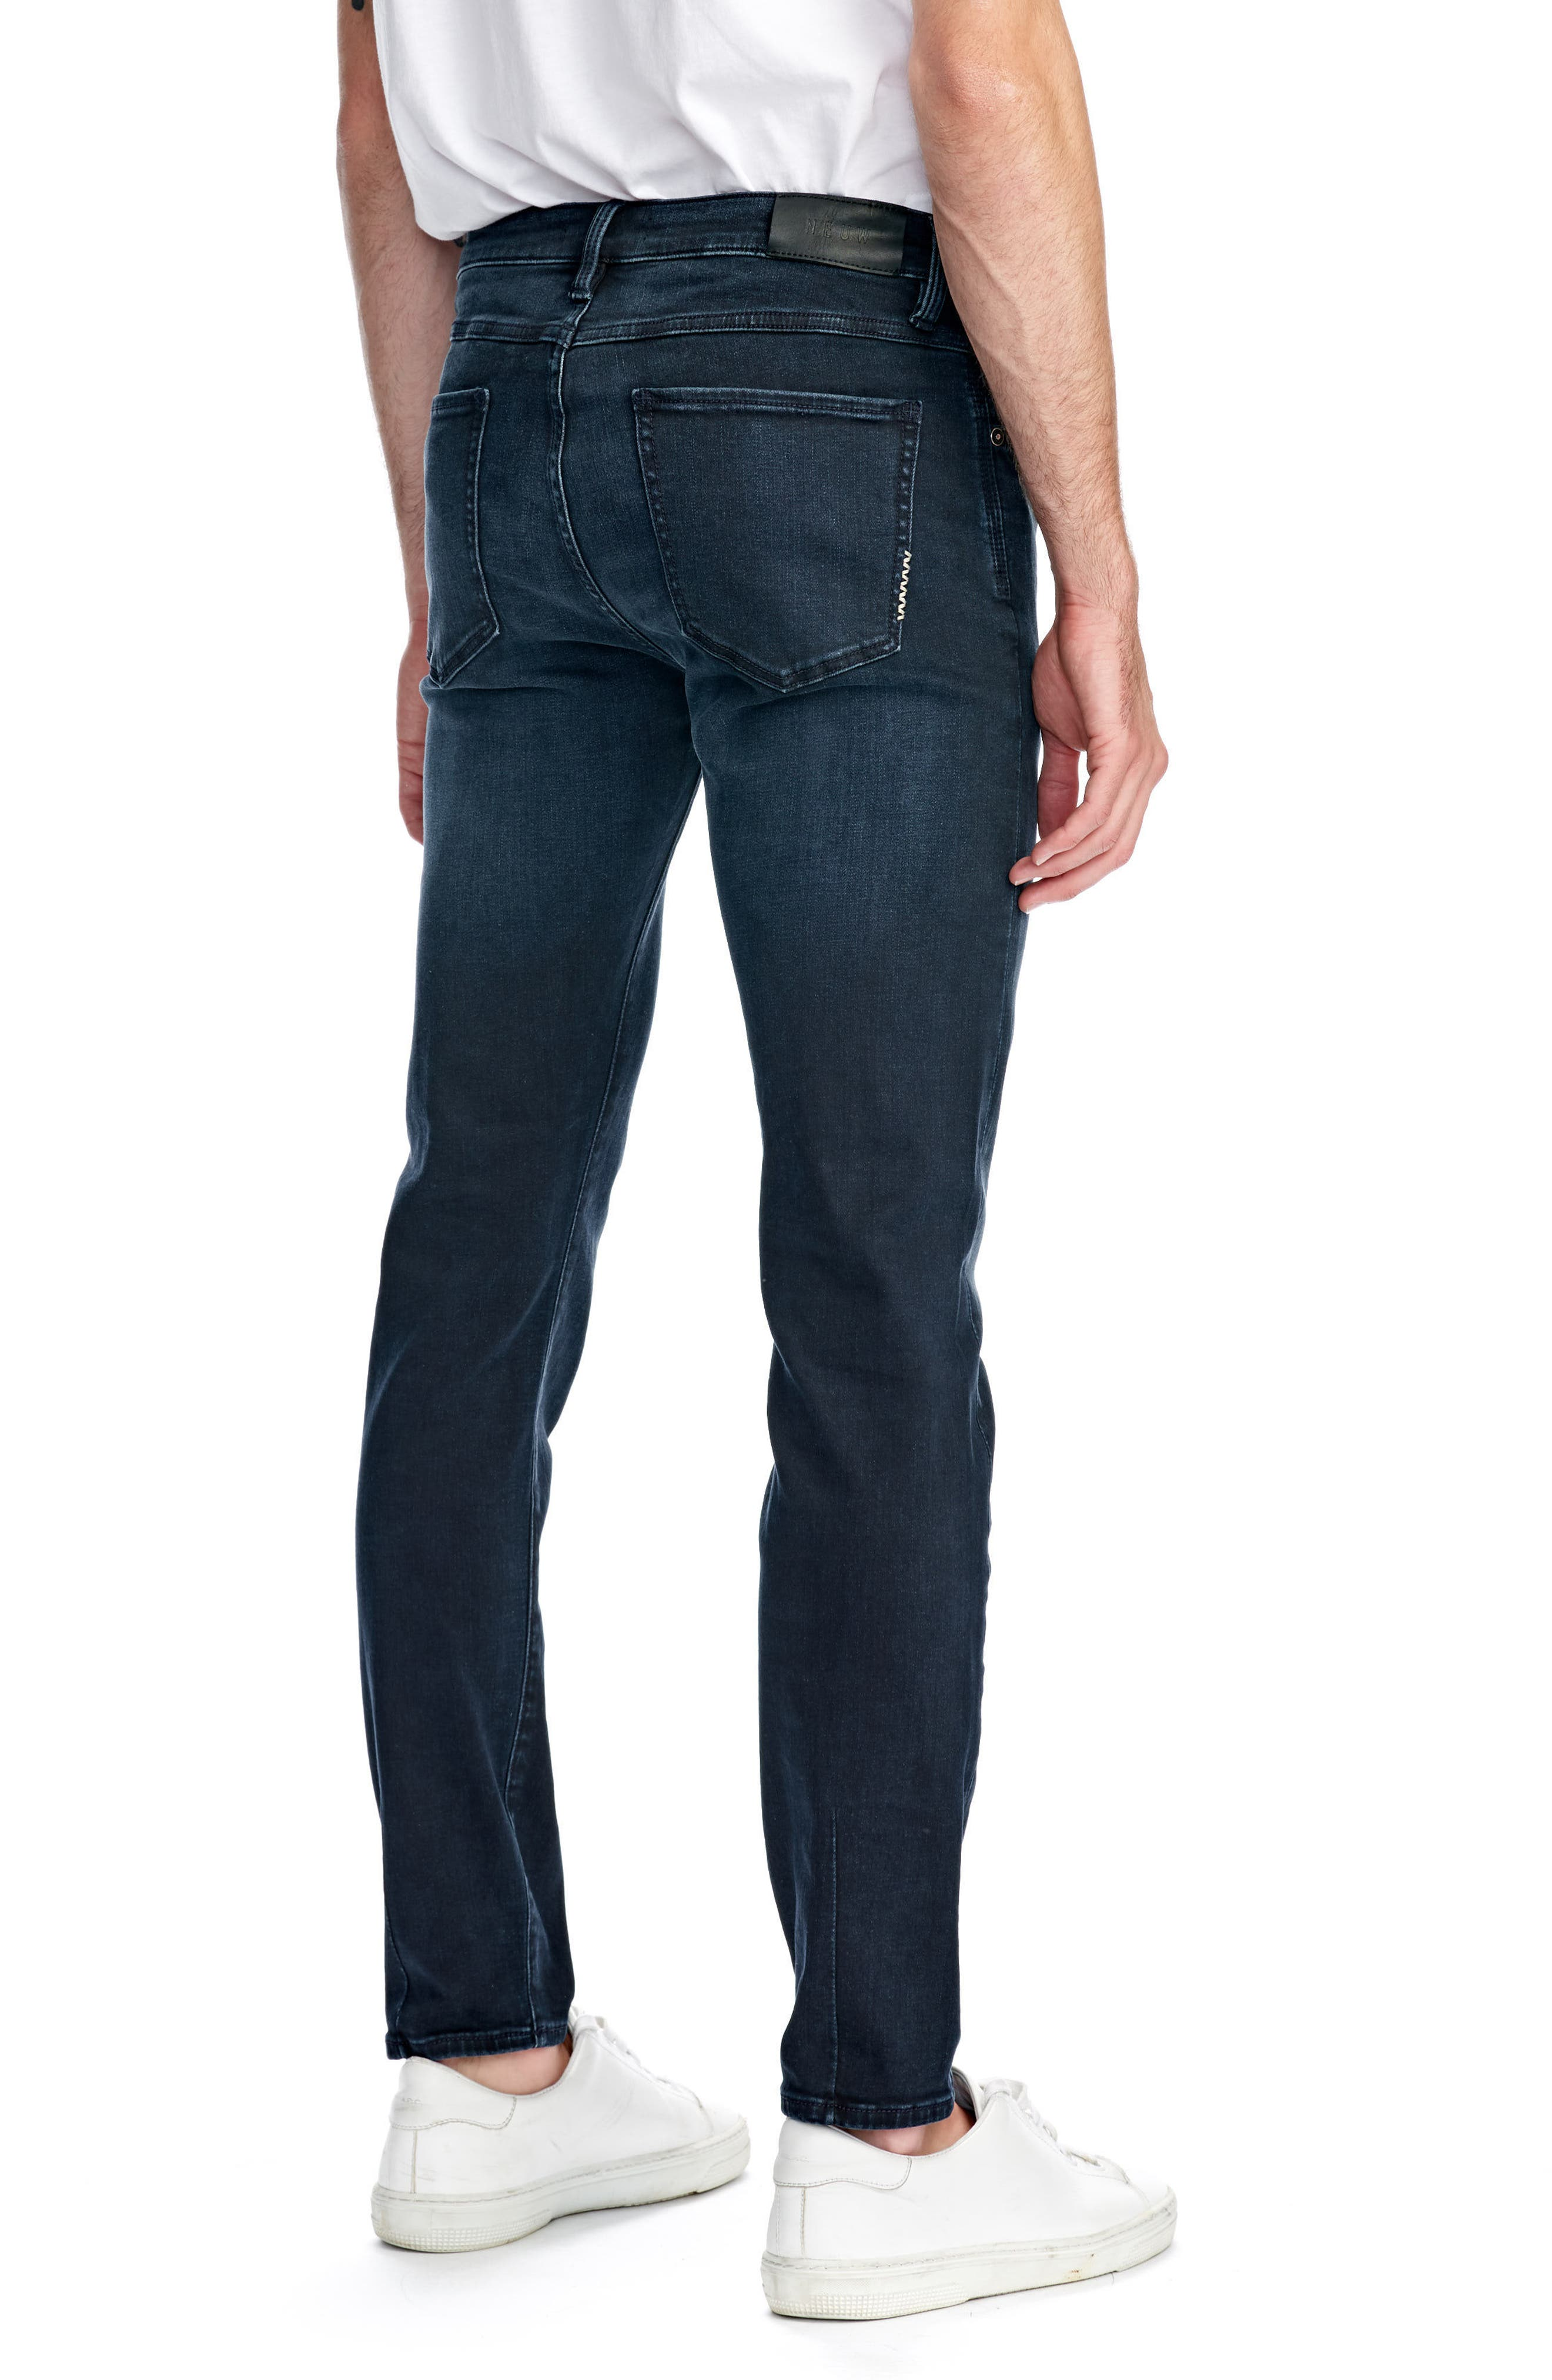 Iggy Skinny Fit Jeans,                             Alternate thumbnail 2, color,                             POLAR